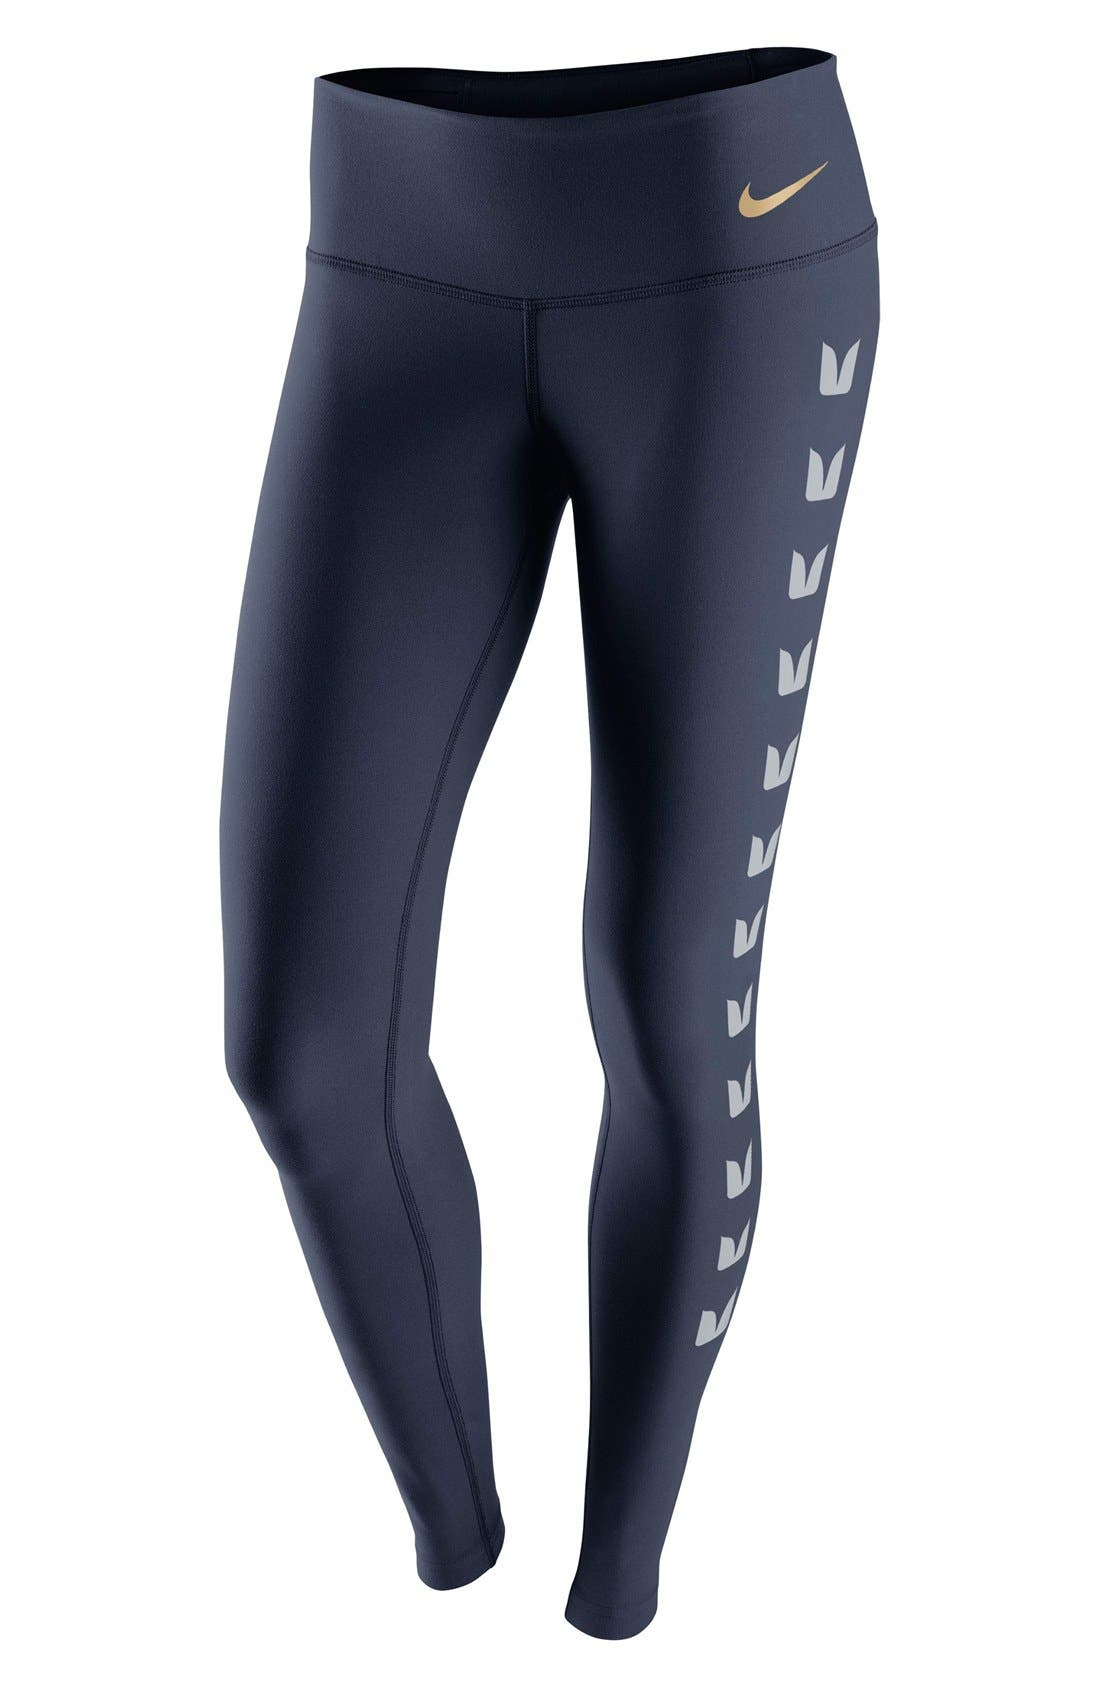 Alternate Image 1 Selected - Nike 'Legend - Champ Drive' Tights